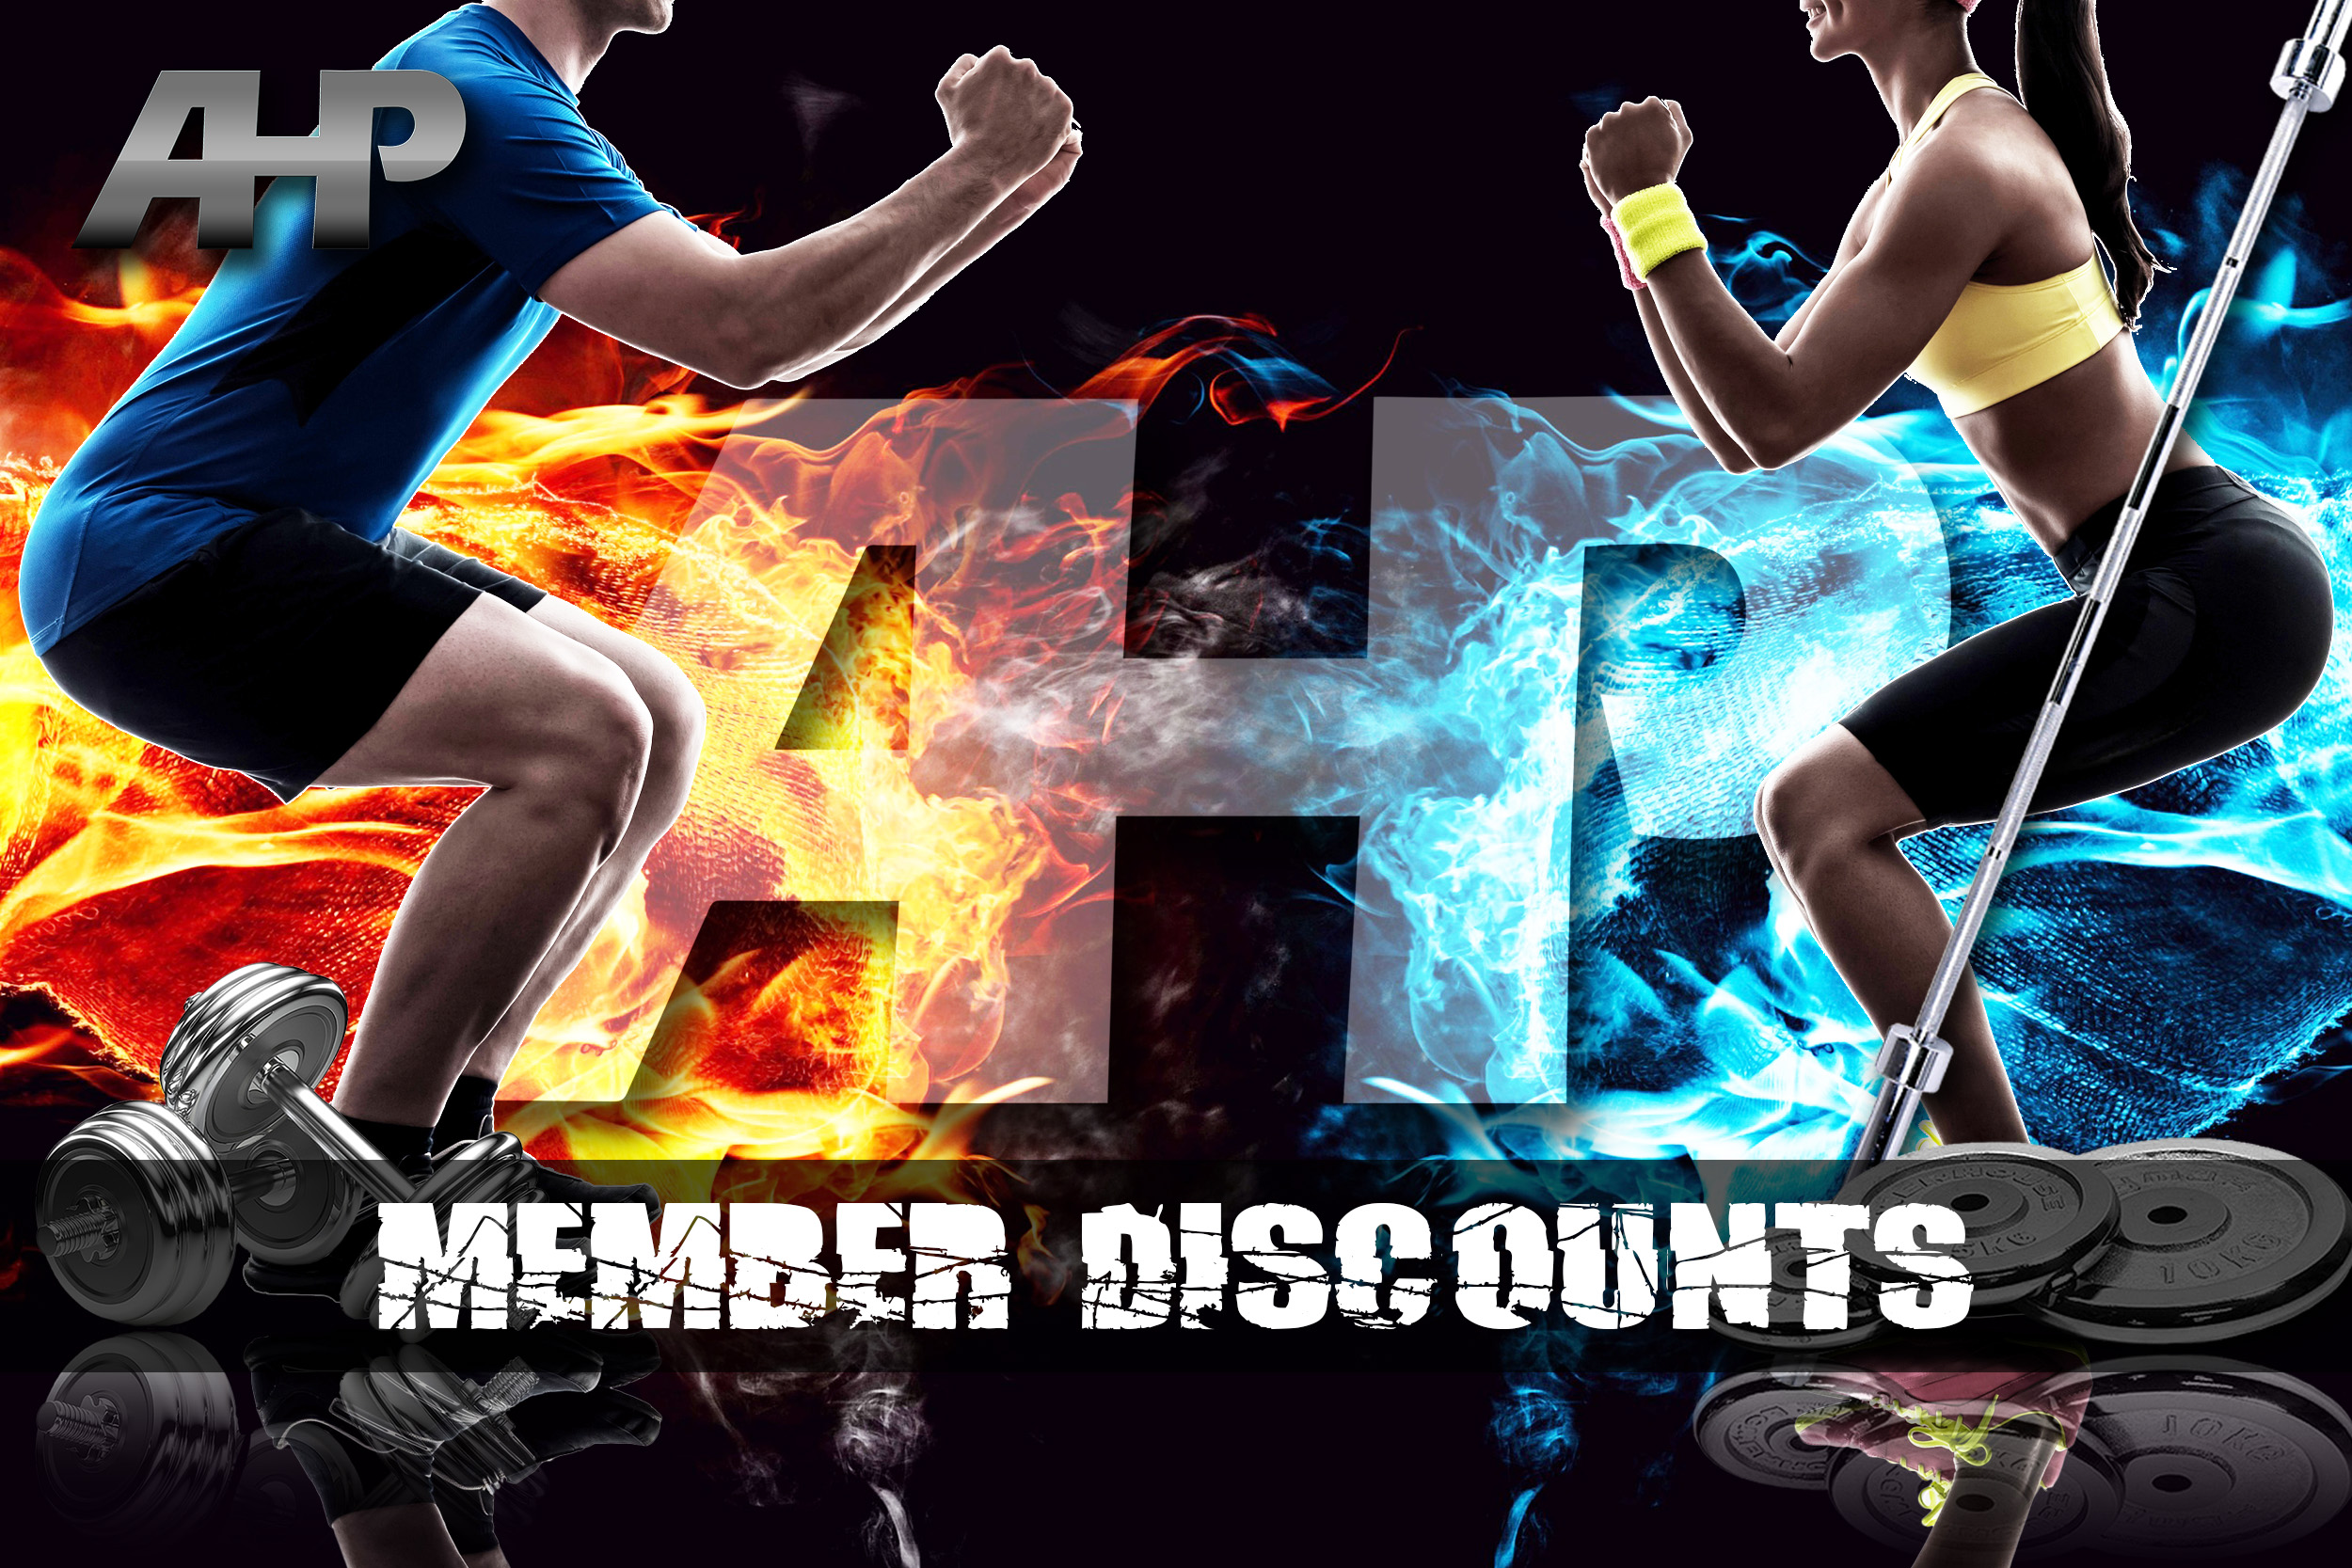 Member Discounts Thumbnail - Training Redefined (AHP).jpg